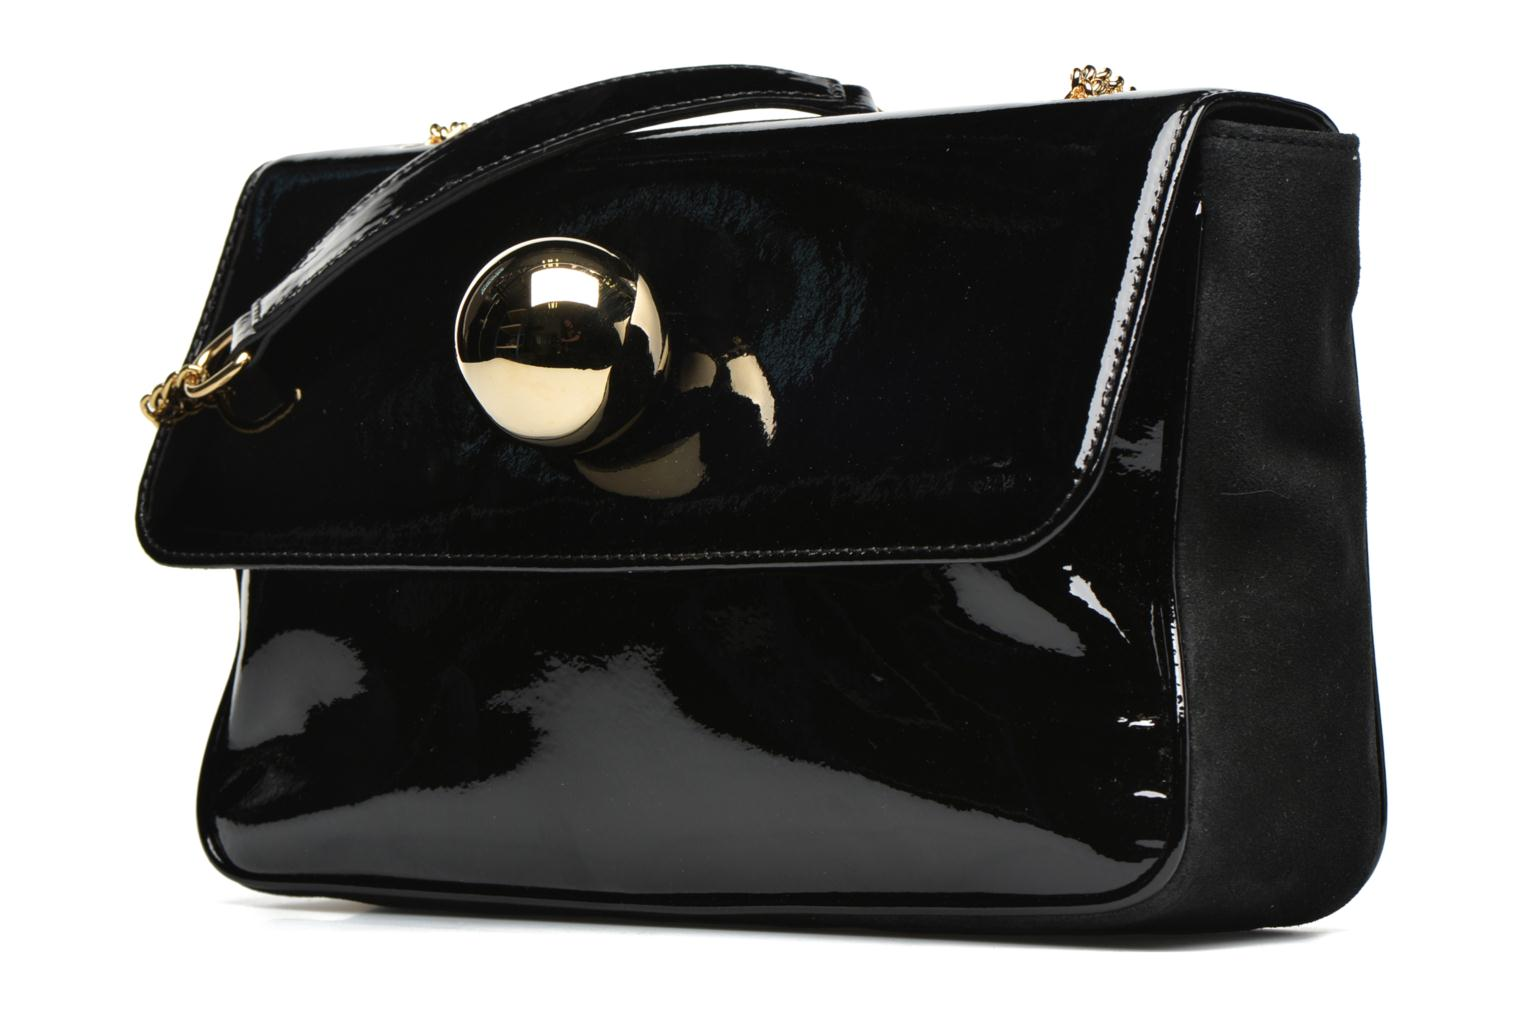 MIRROR BALL Shoulder bag Black